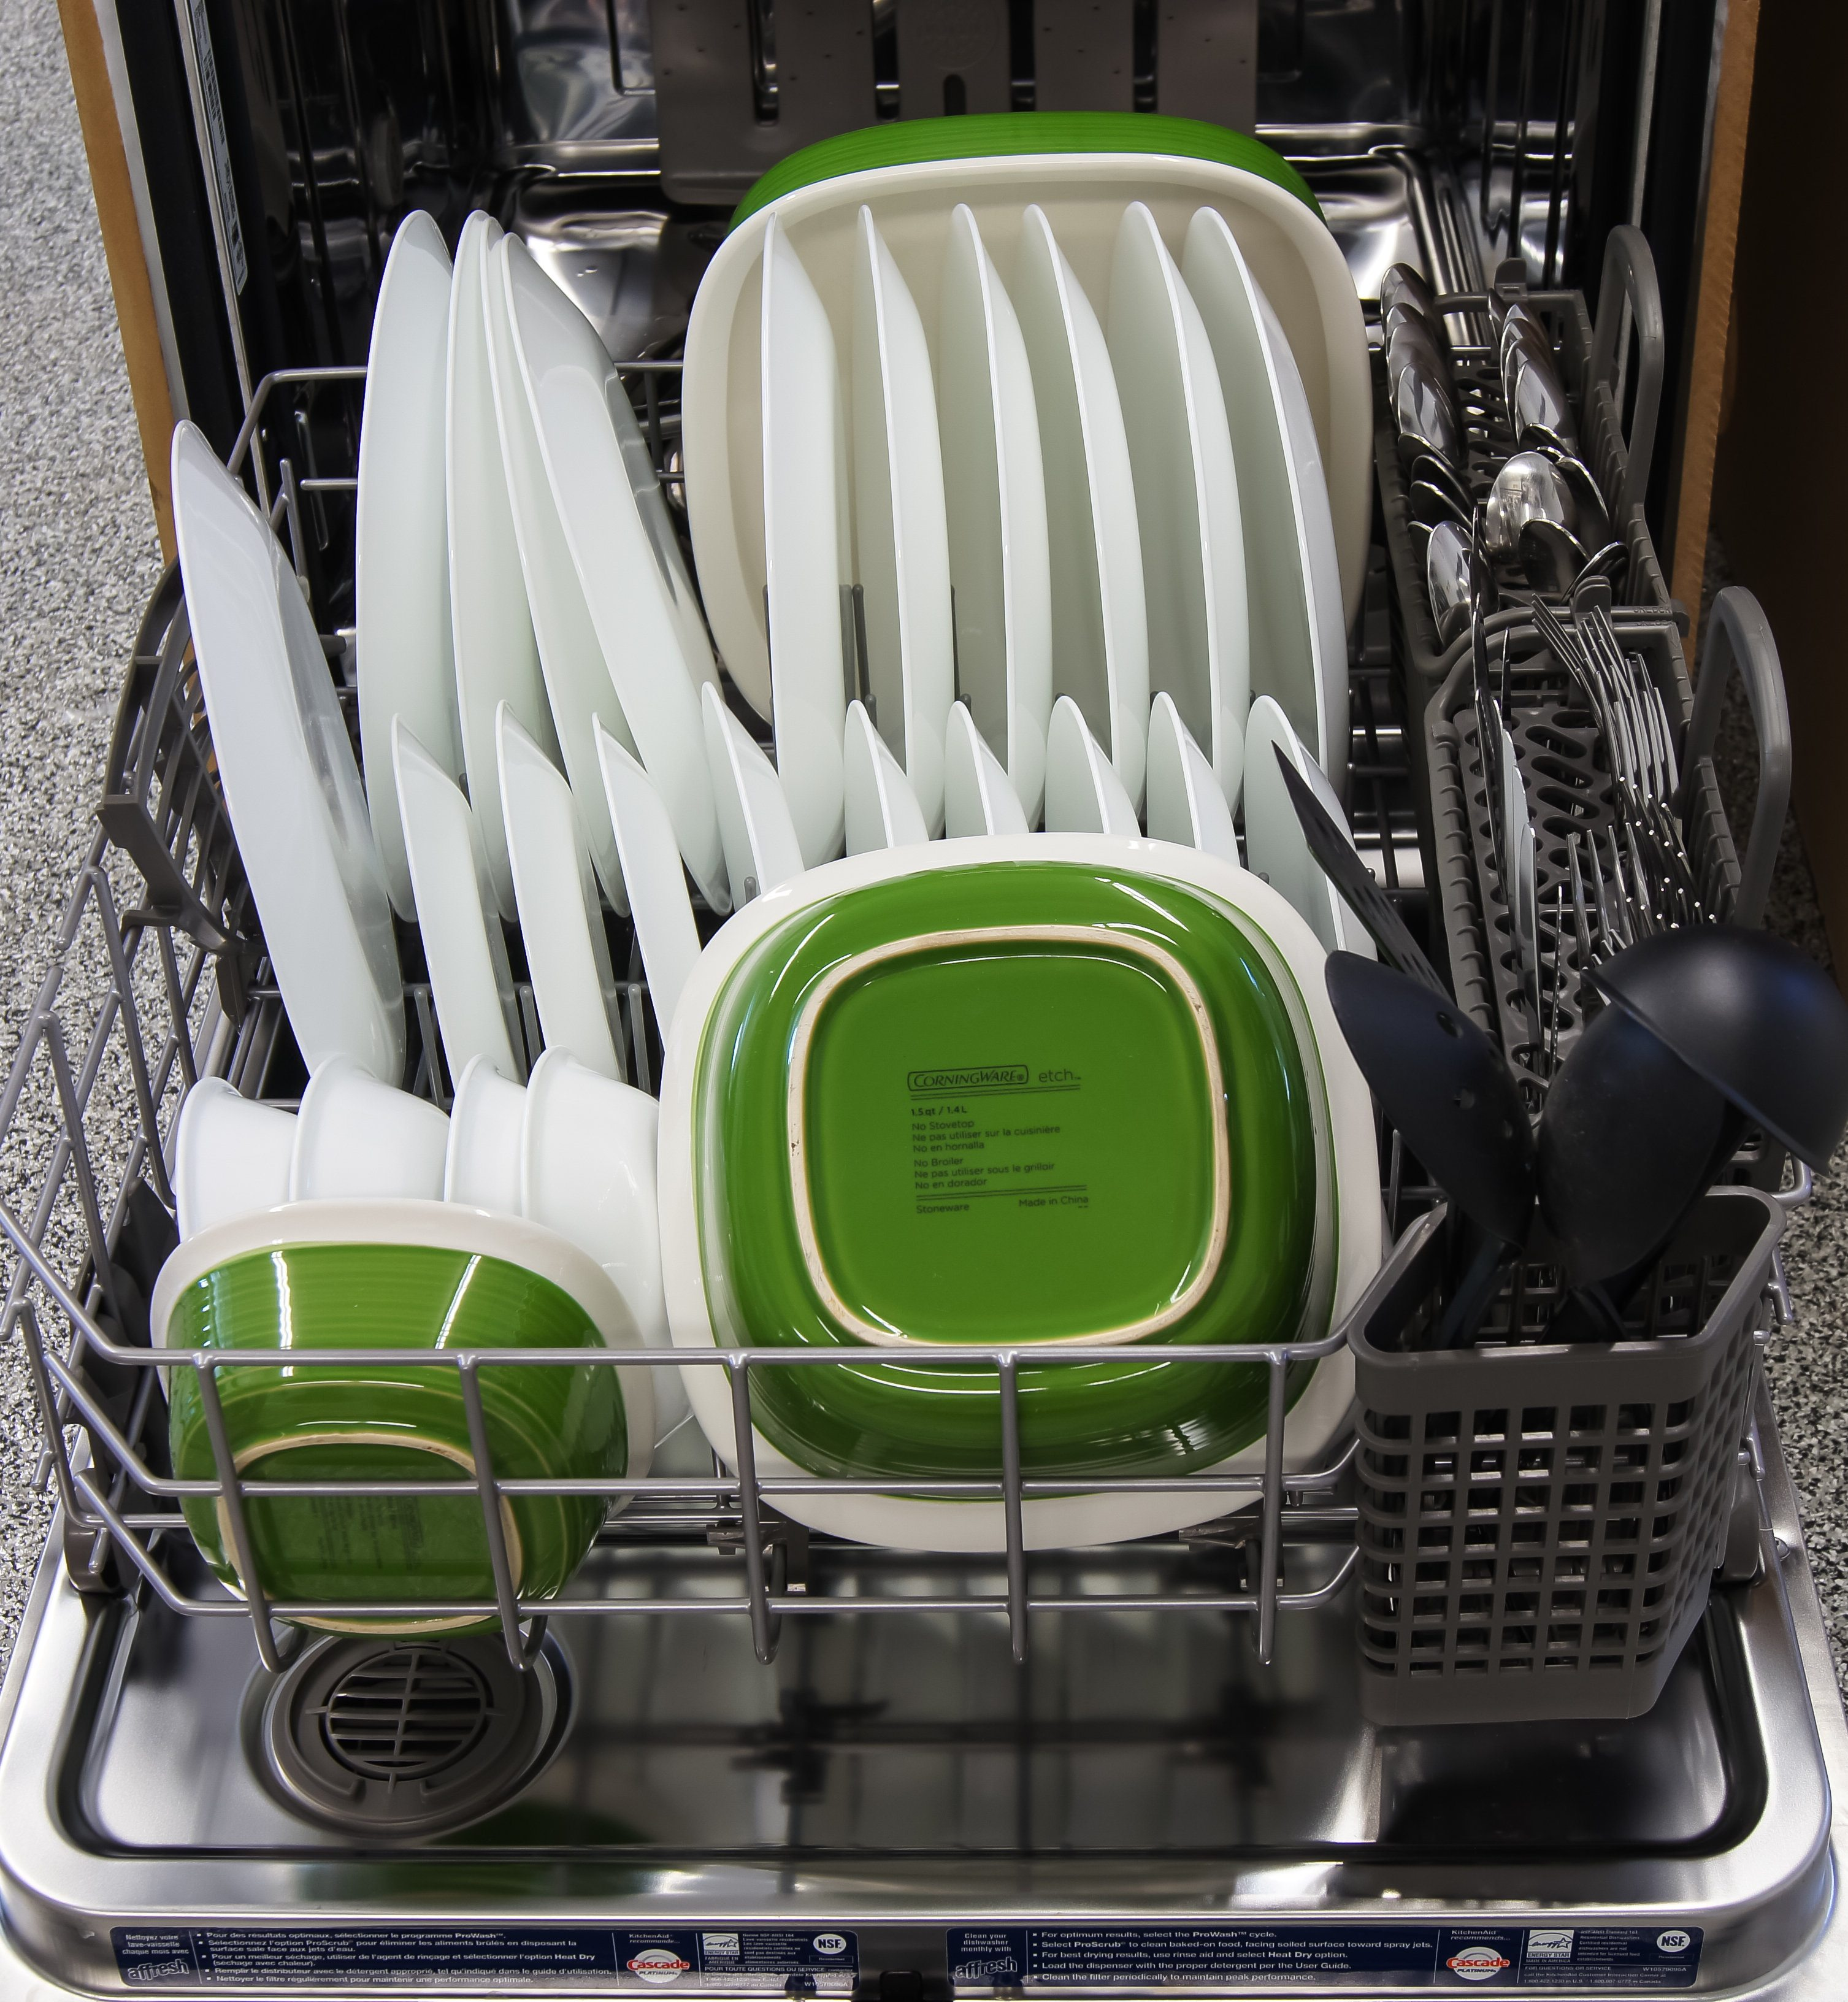 Dishwashers Fit More Than You Think Here S The Best Way